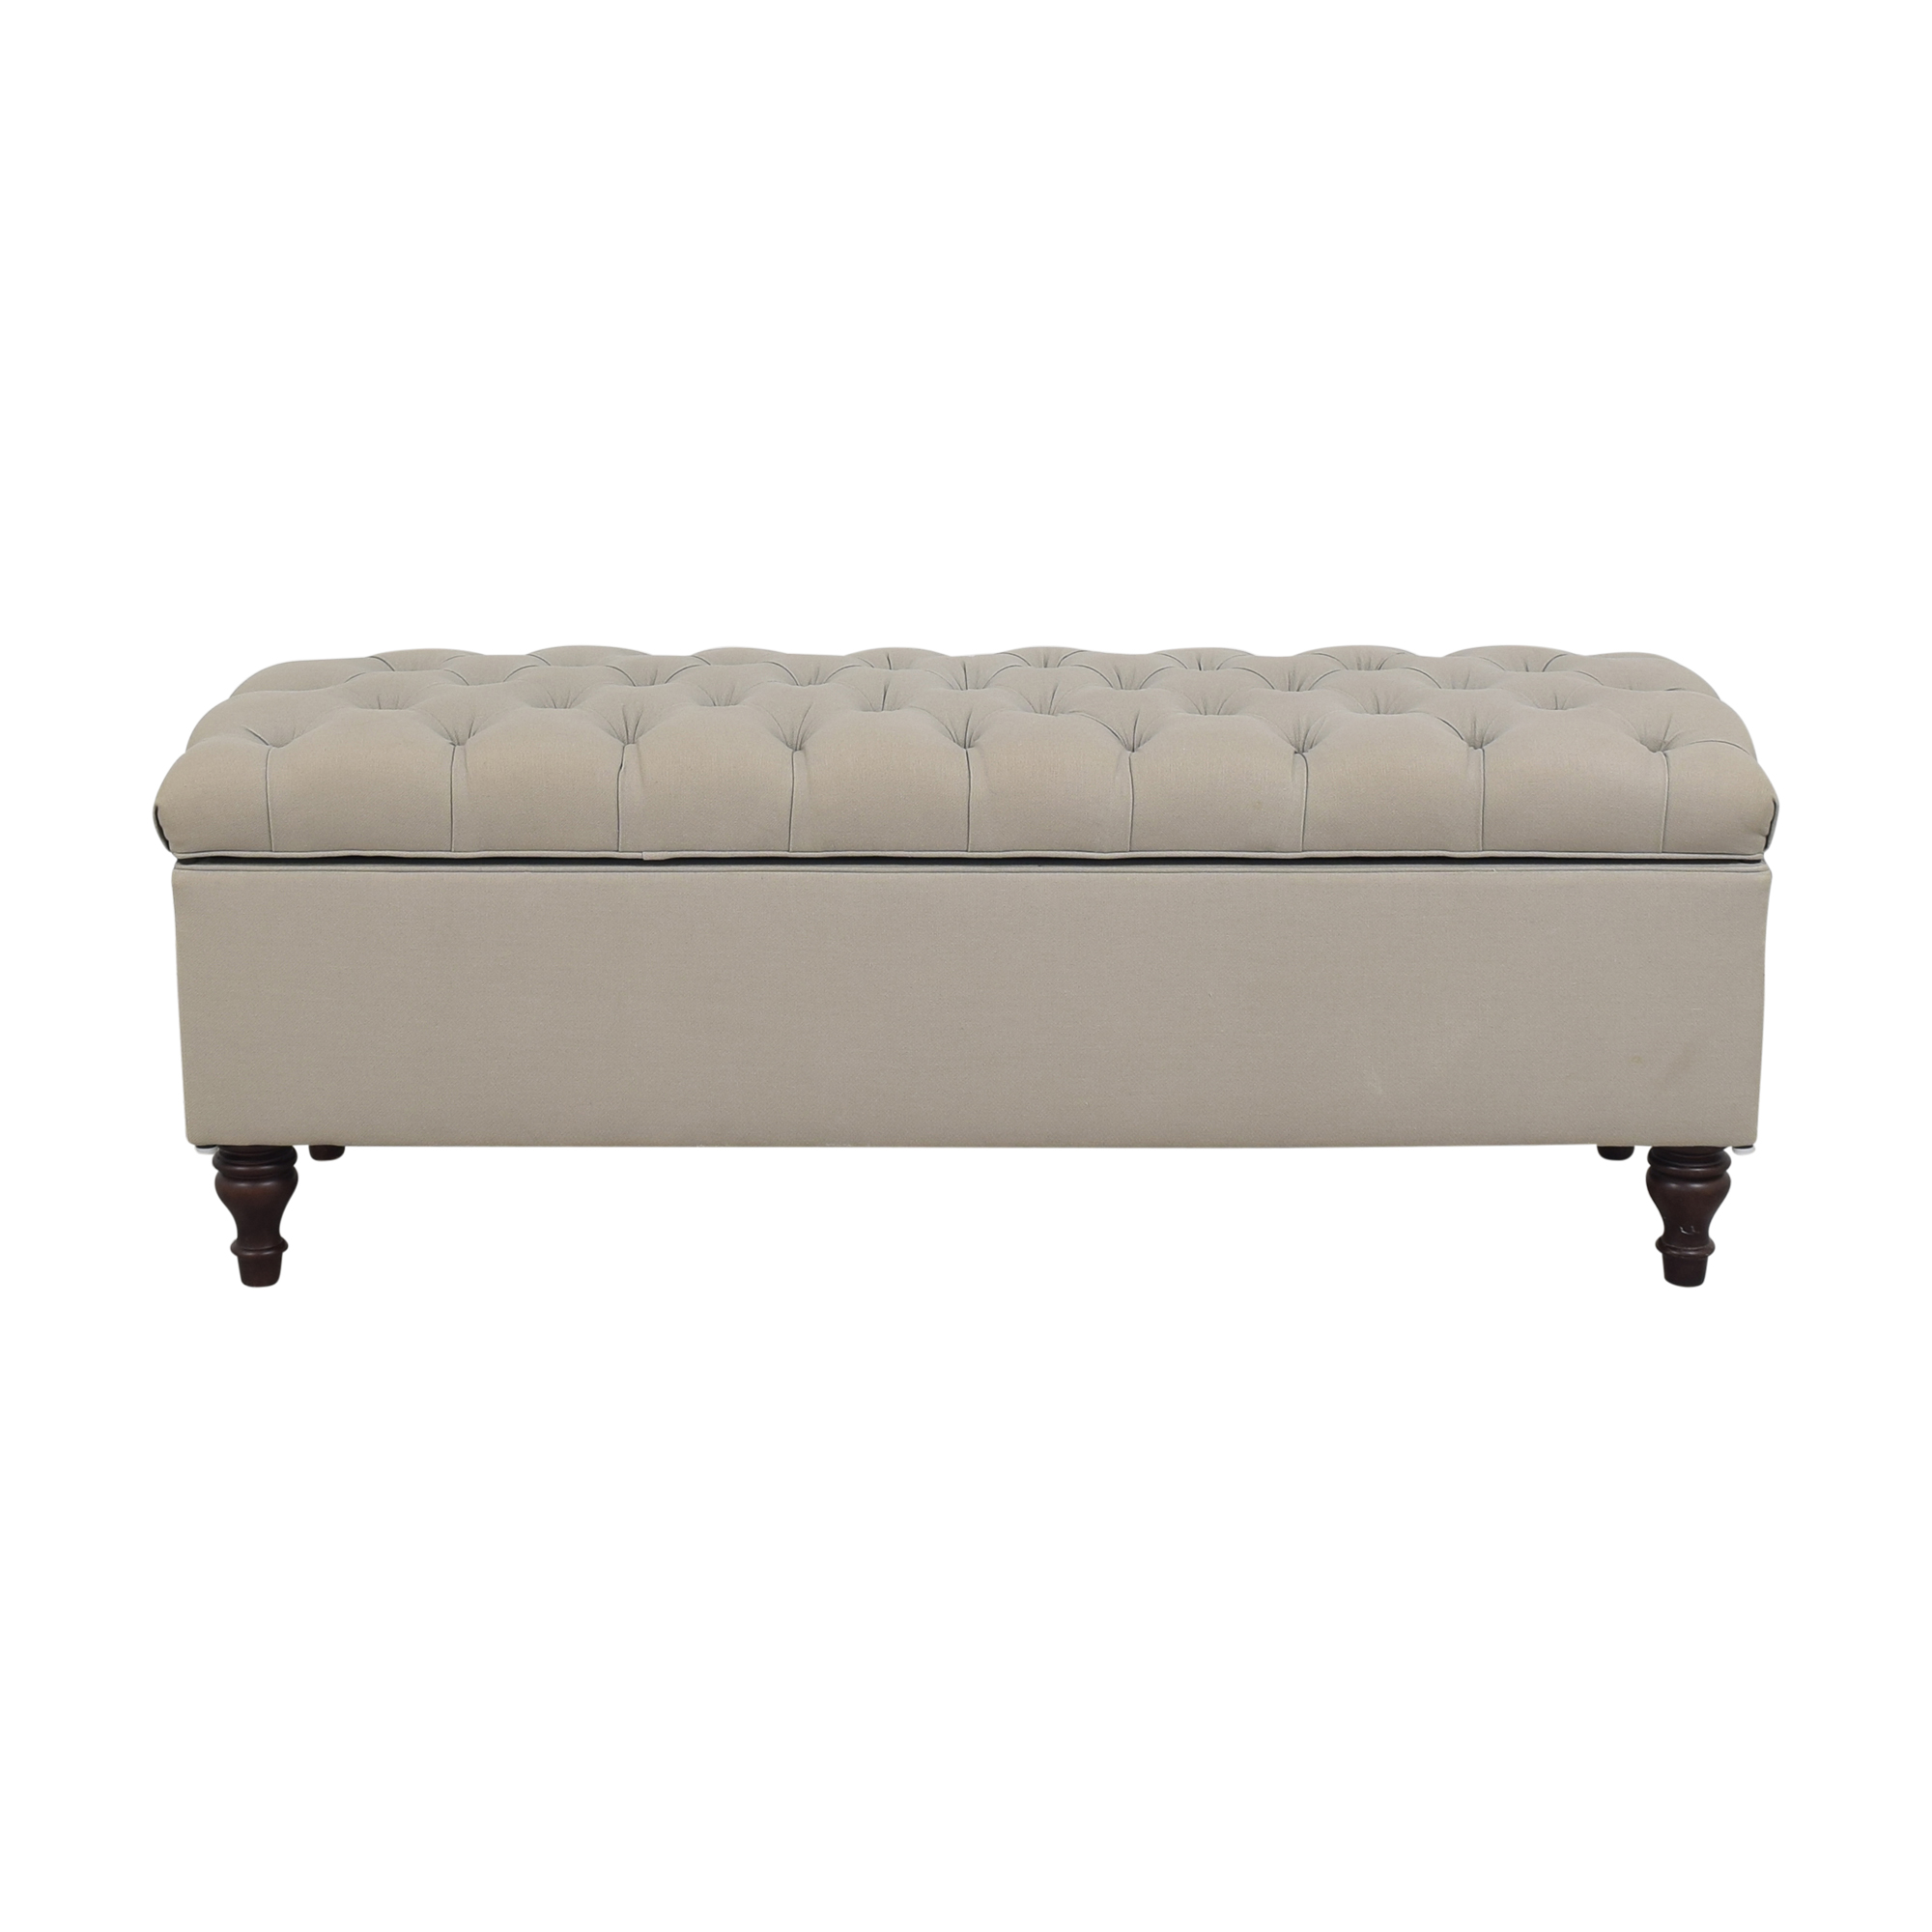 Pottery Barn Pottery Barn Lorraine Tufted Upholstered Queen Storage Bench ct